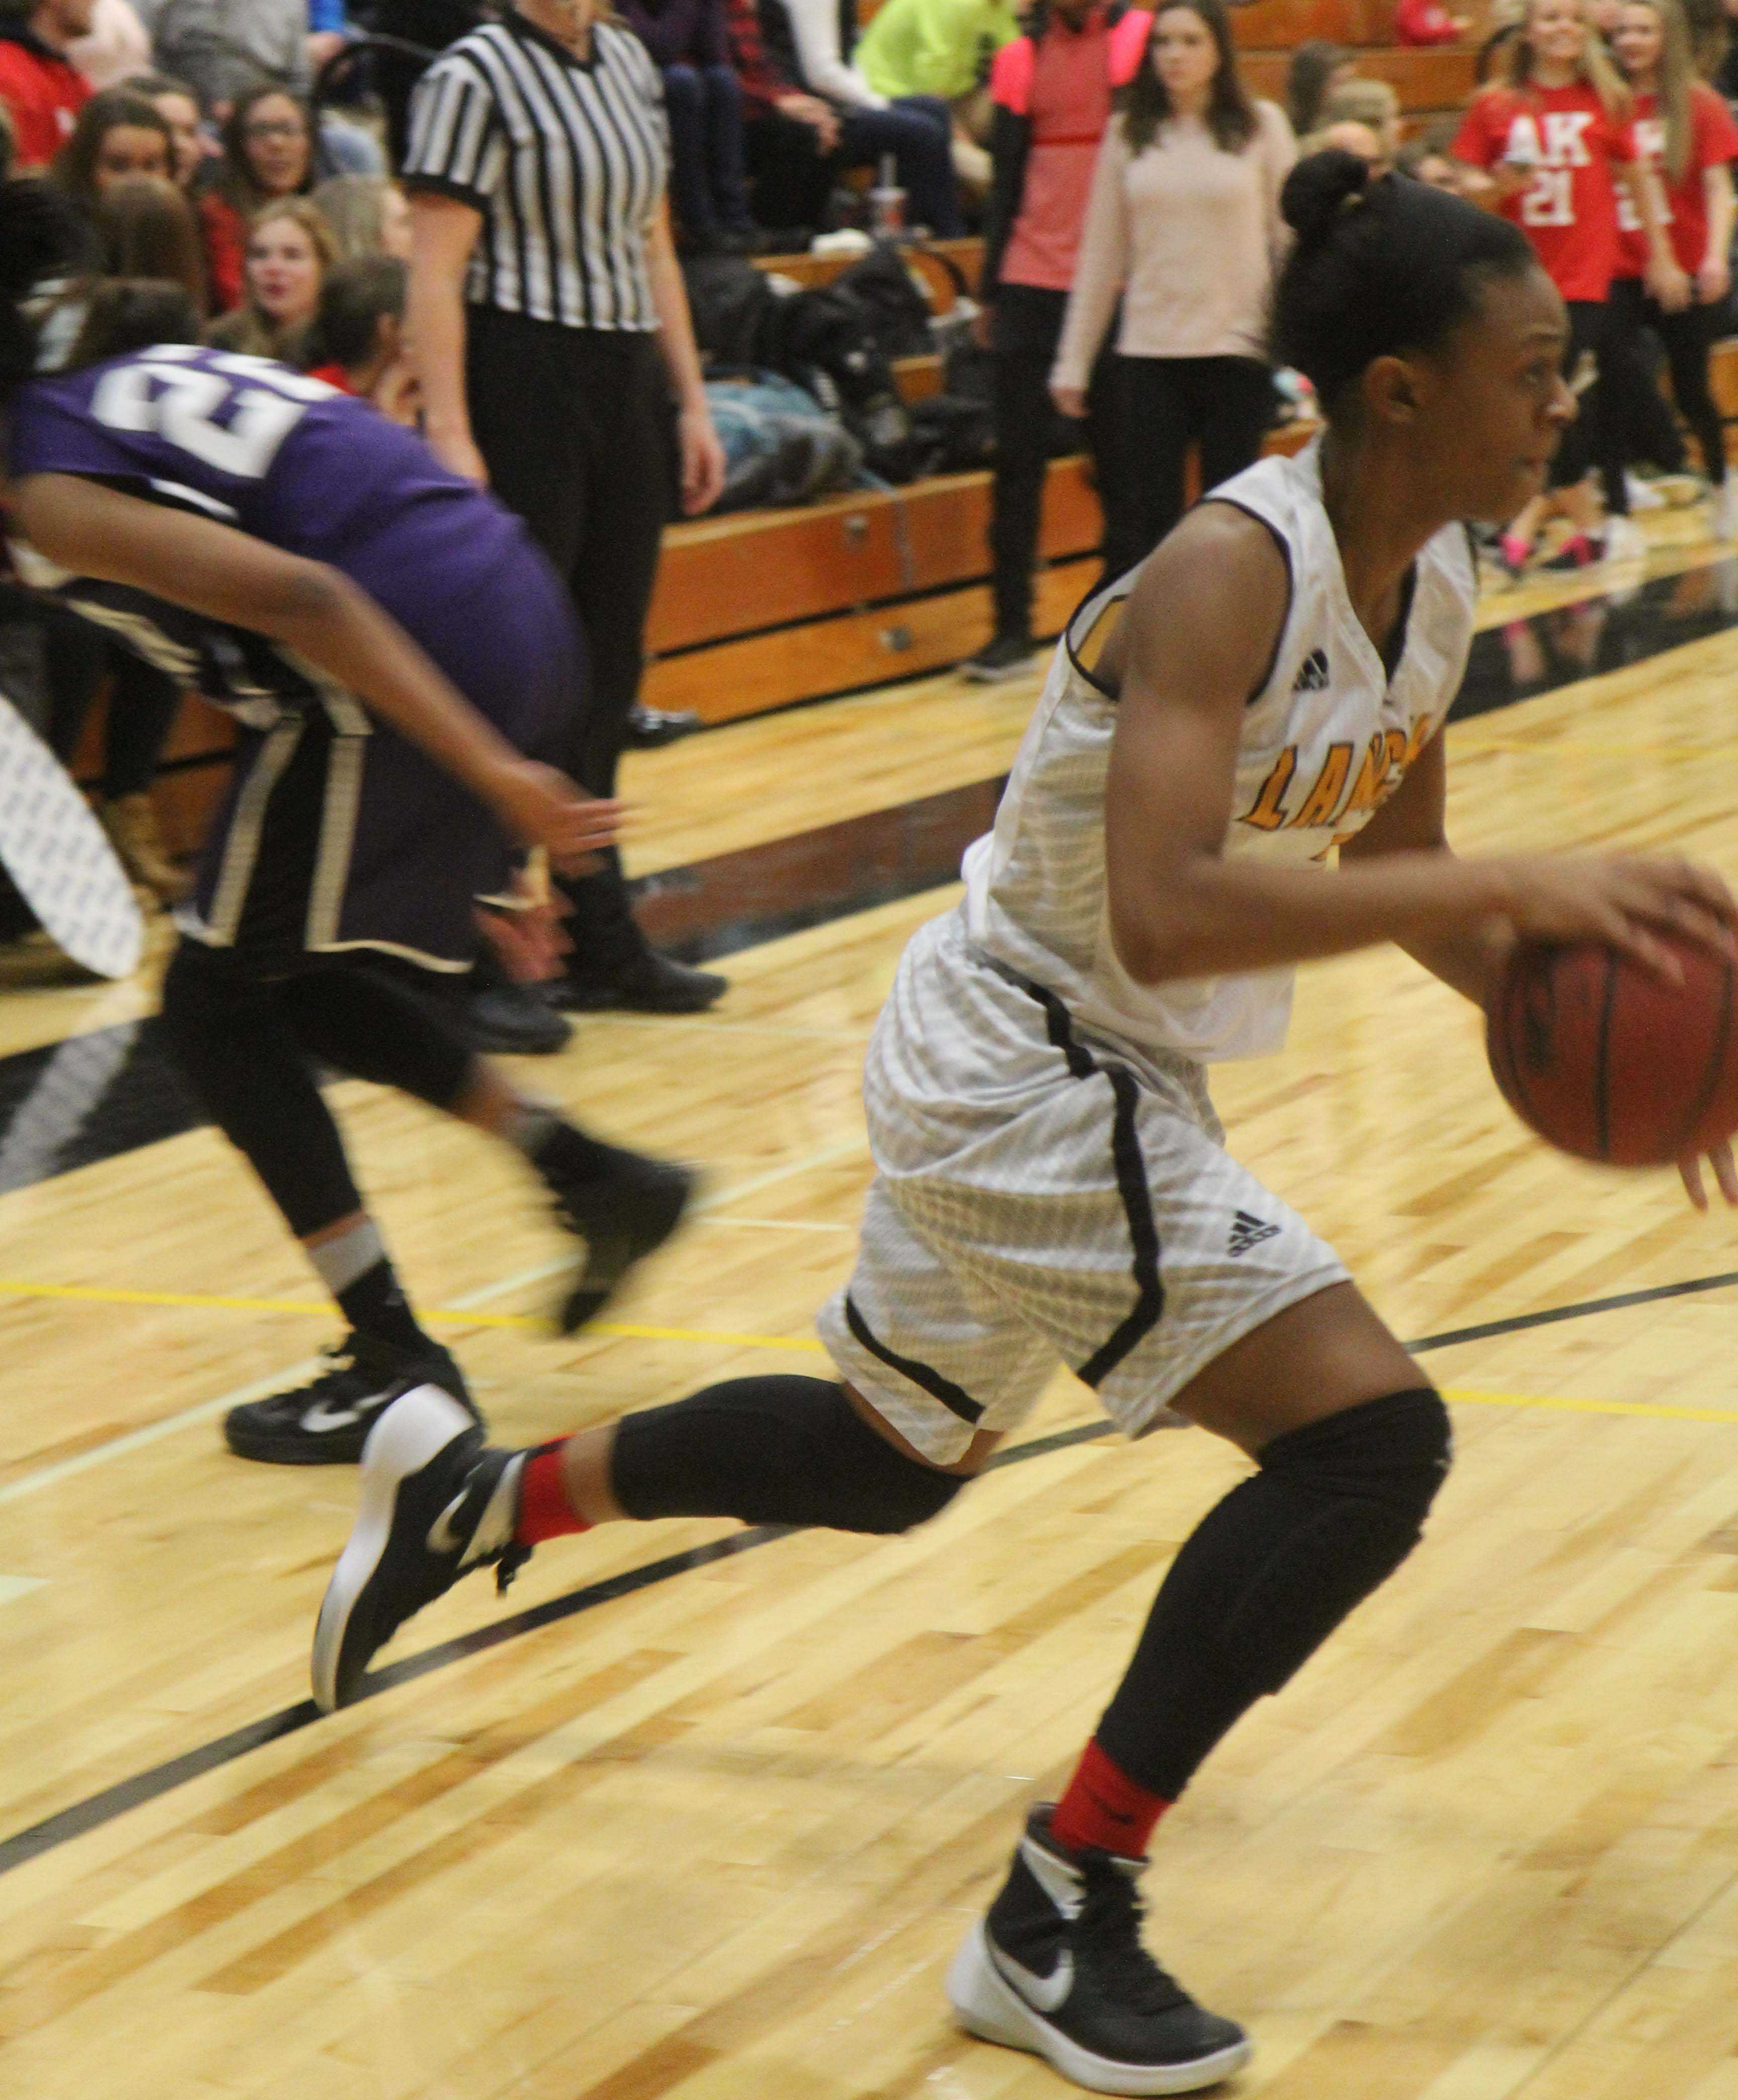 Jordyn Terry drives by an opponent in a game last year.